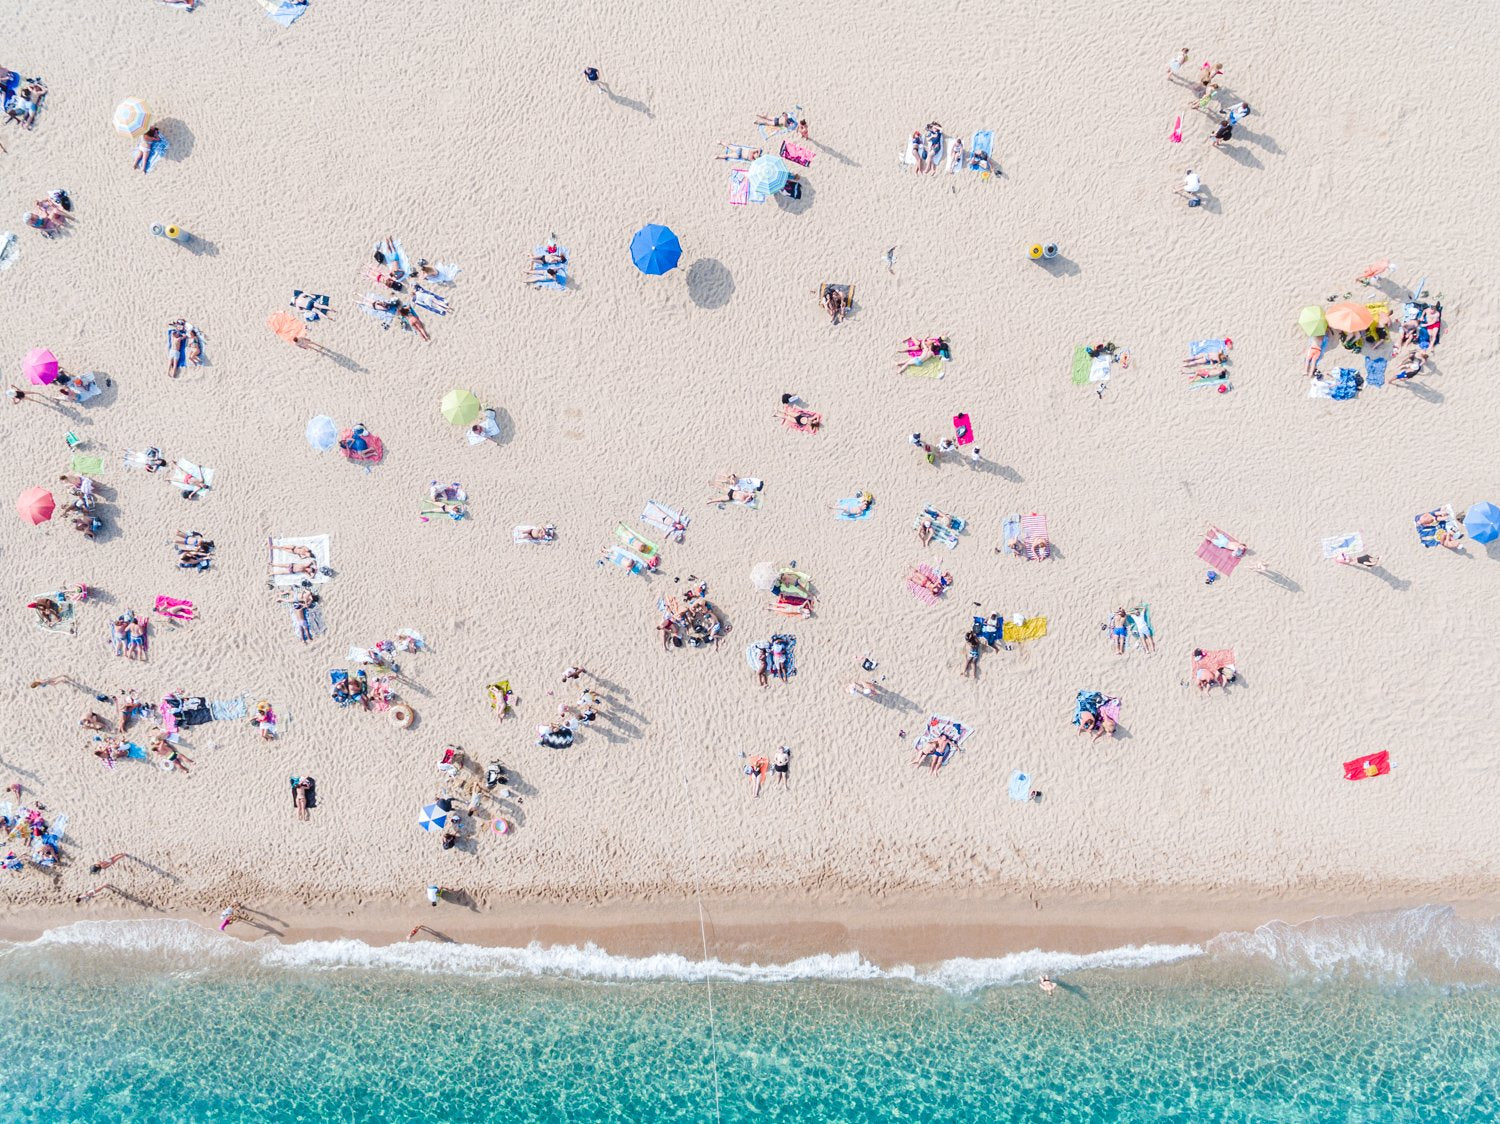 People, umbrellas and towels seen from above